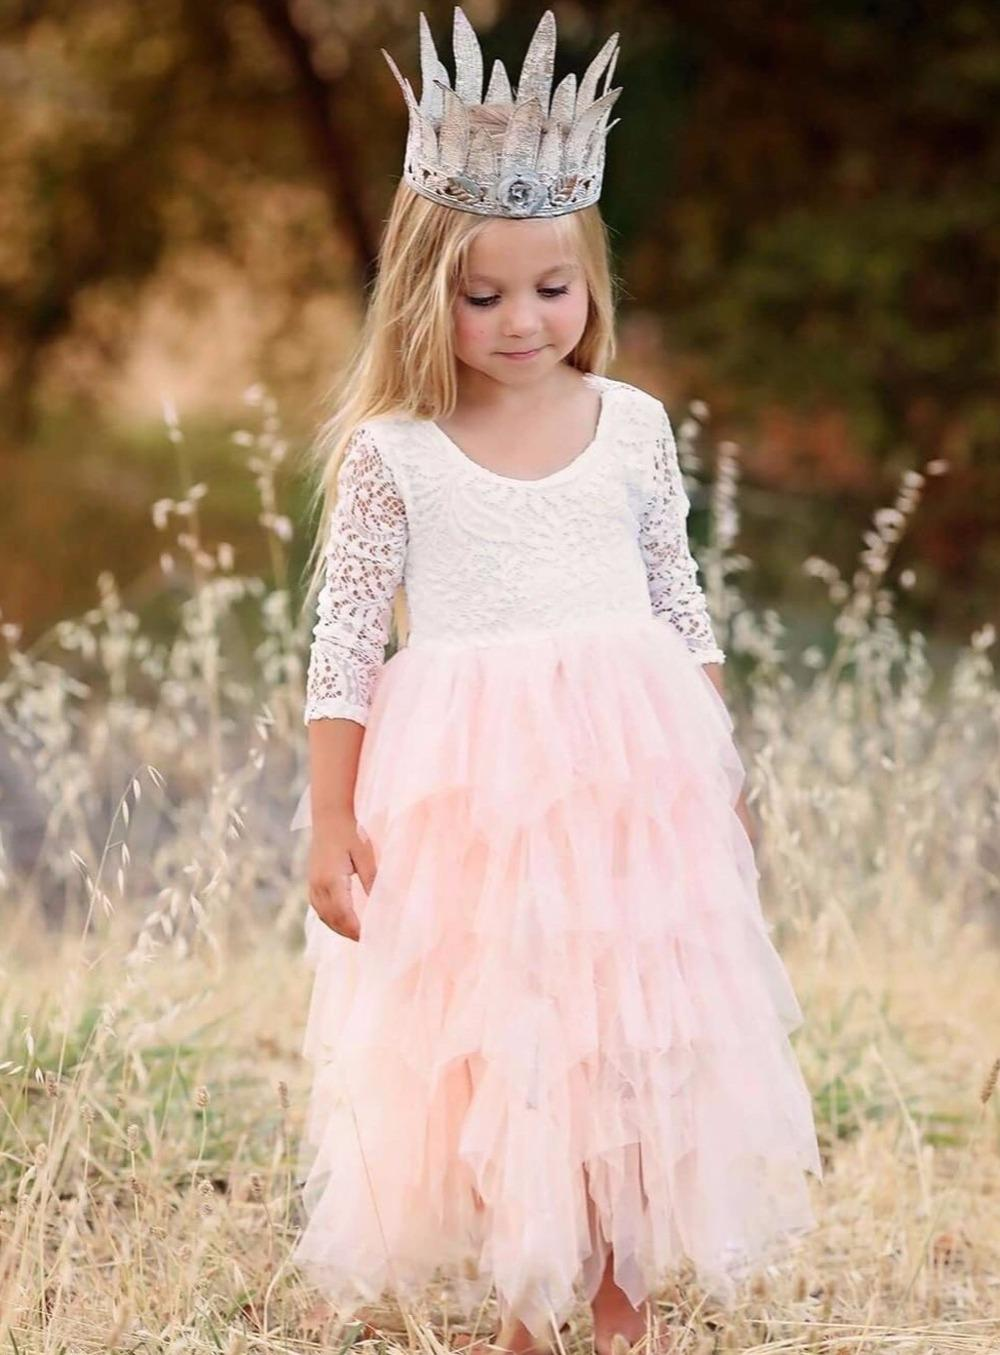 97156957ee6 New Arrival Puffy Lace Pink Flower Girl Dresses 2018 Soft Tiered Tulle Ball  Gown Pageant Dresses For Girls Communion Modest Flower Girl Dresses Online  ...